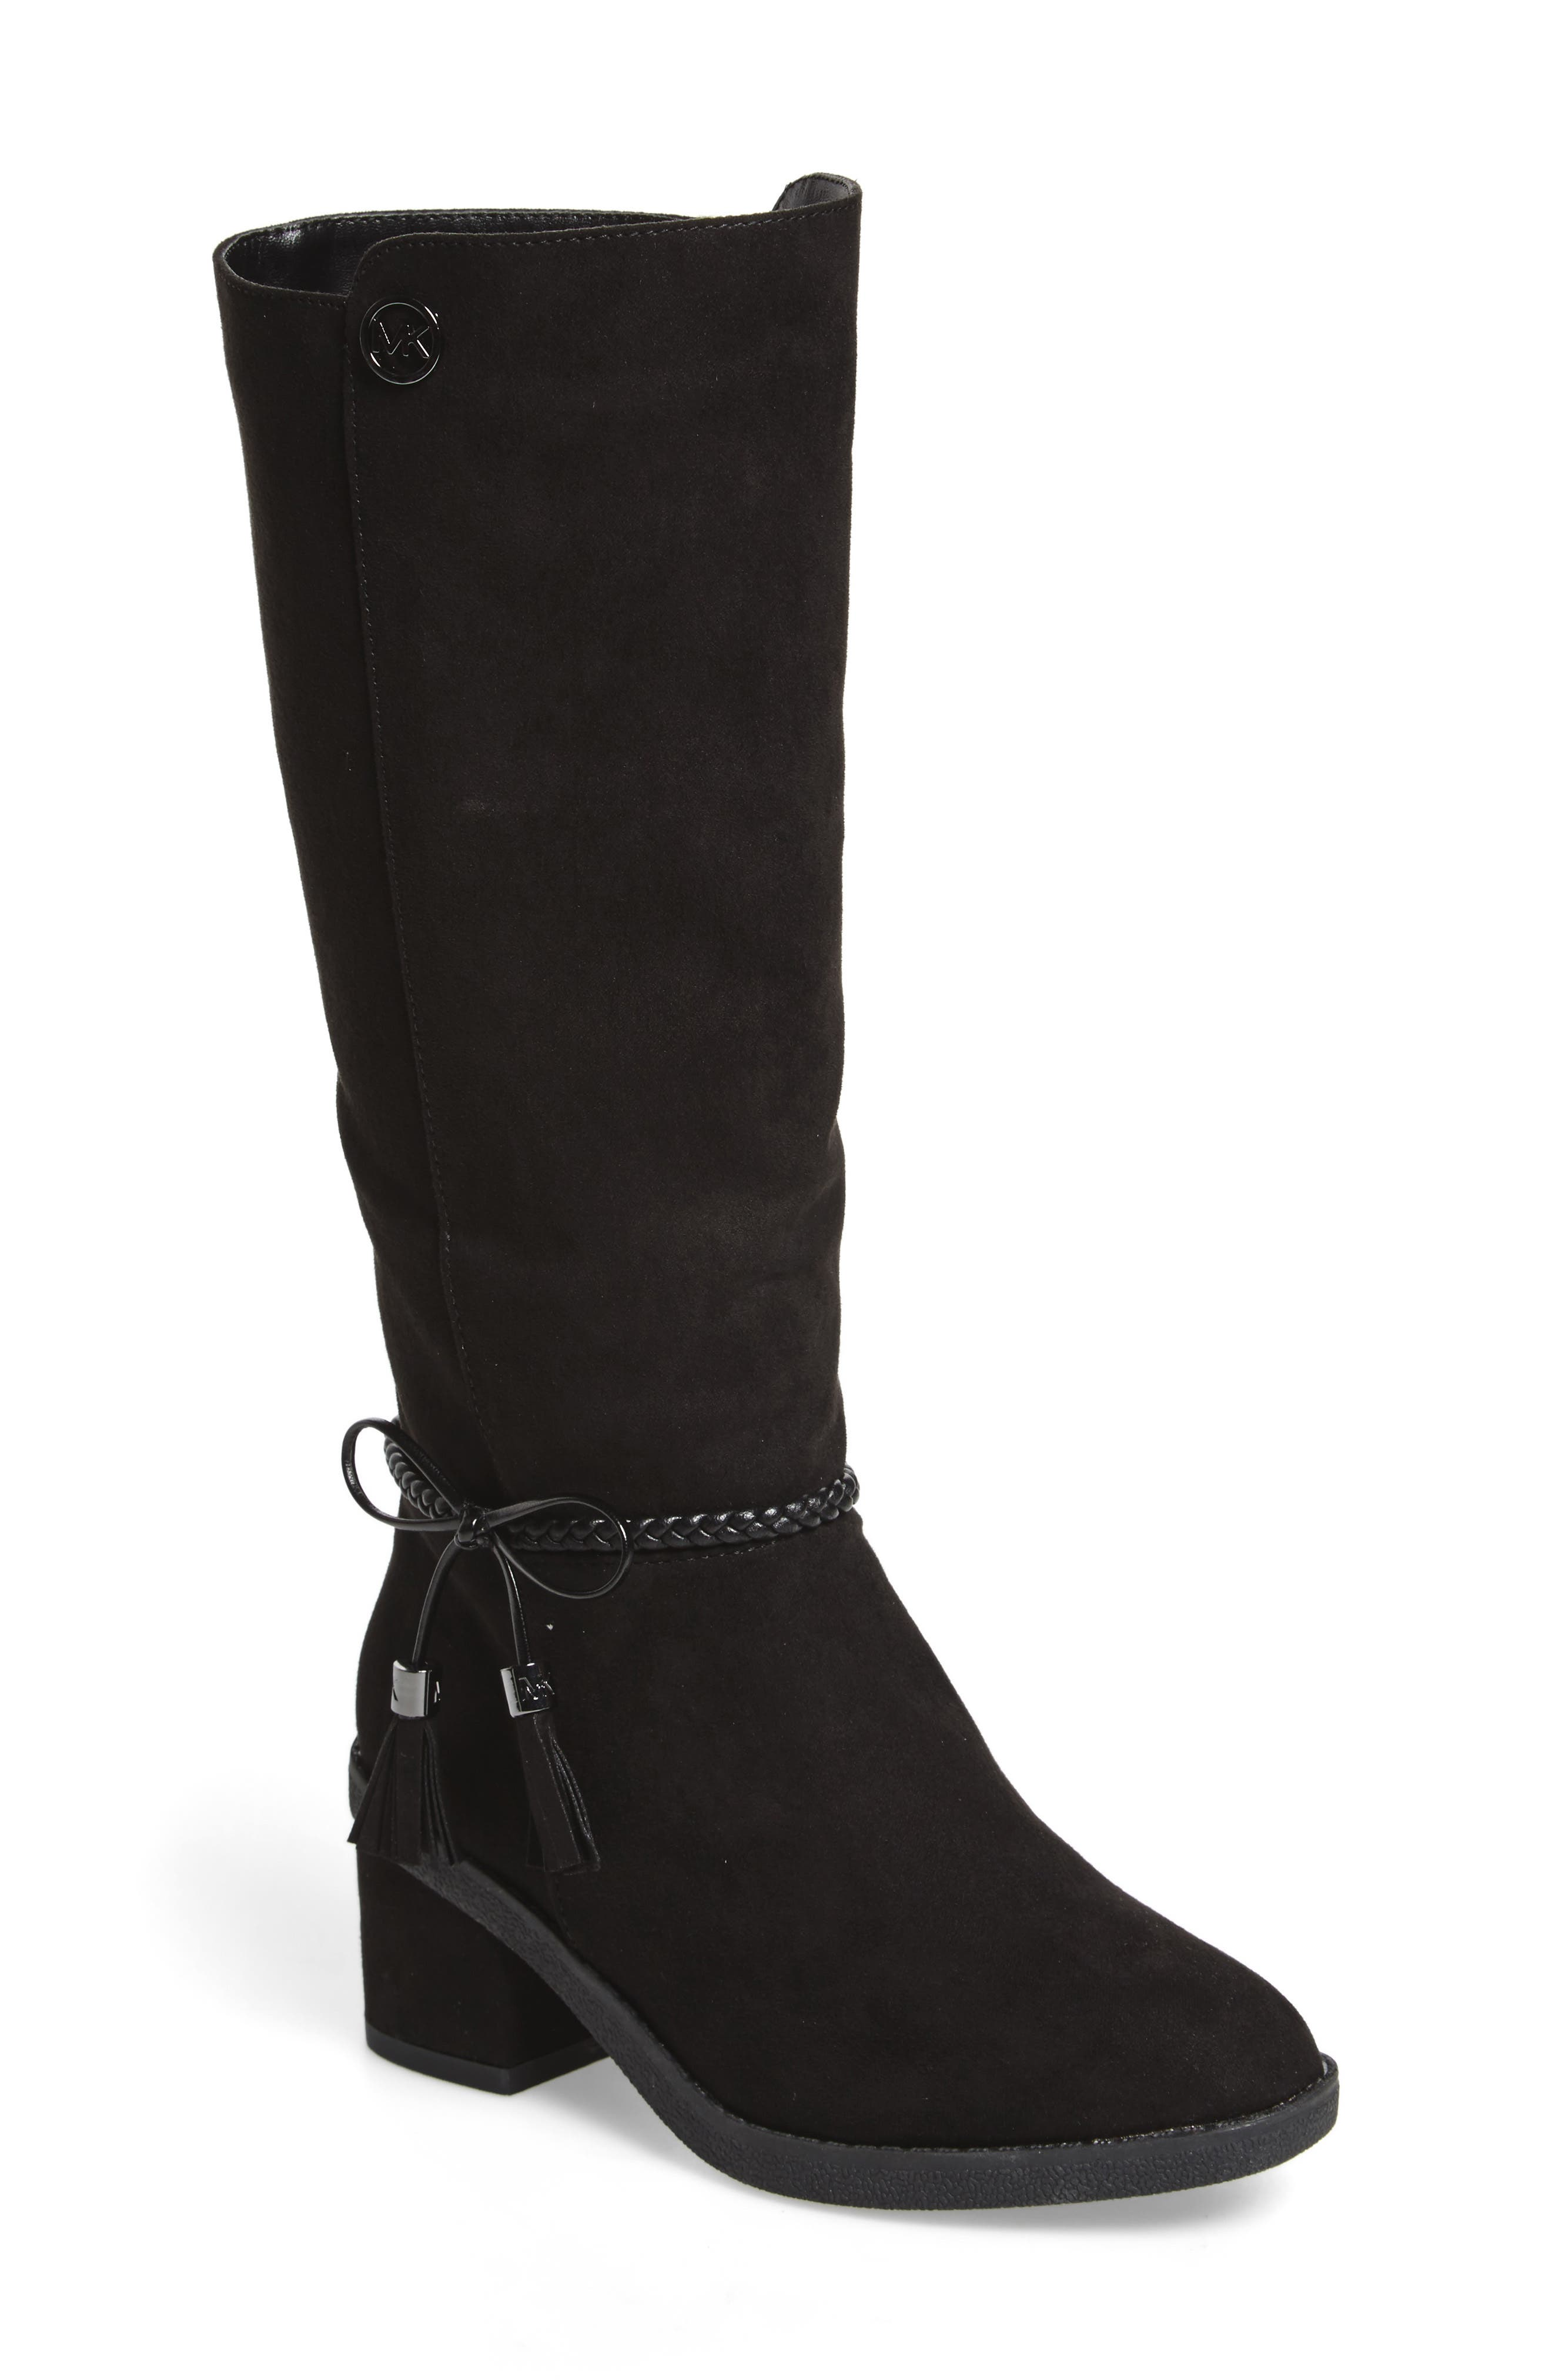 MICHAEL MICHAEL KORS Fawn Simmy Riding Boot